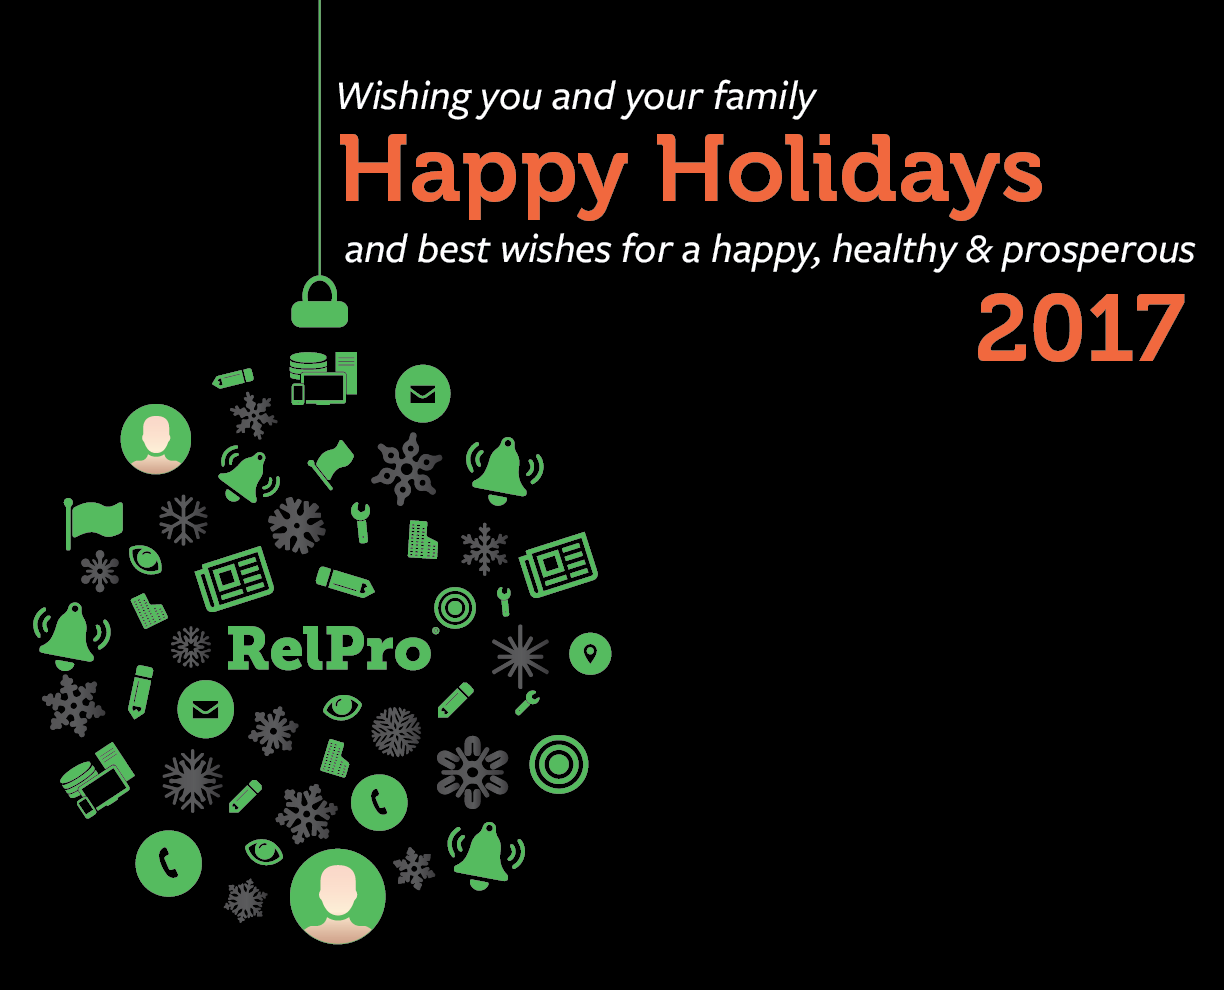 Happy Holidays from Relpro